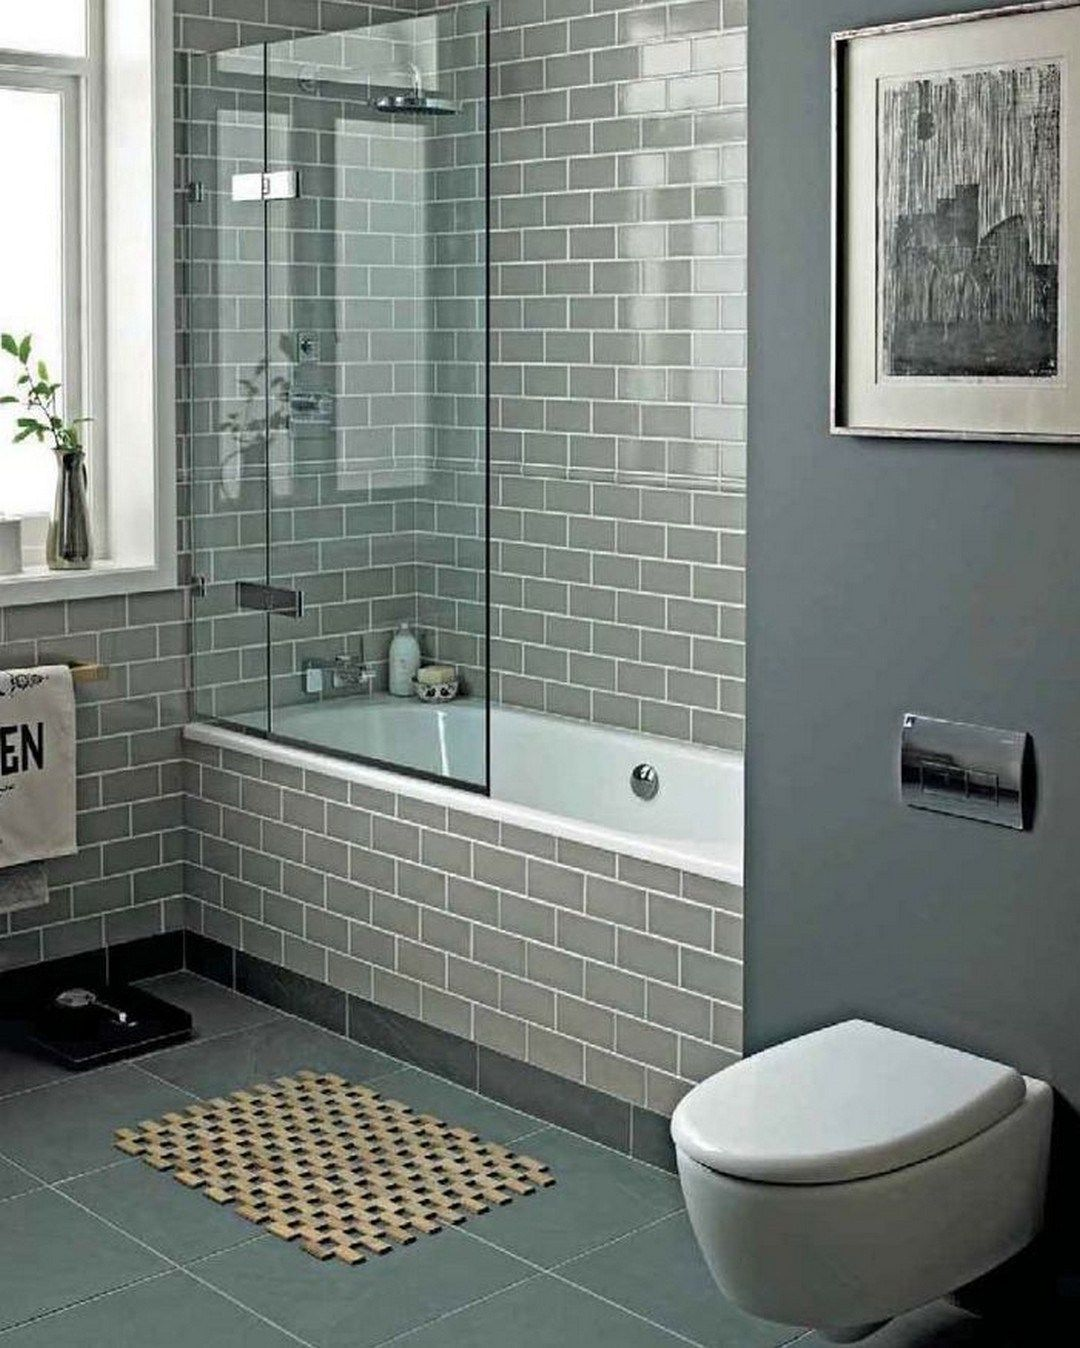 65+ Small Bathroom Remodel Ideas for Washing in Style | Bathroom tub ...